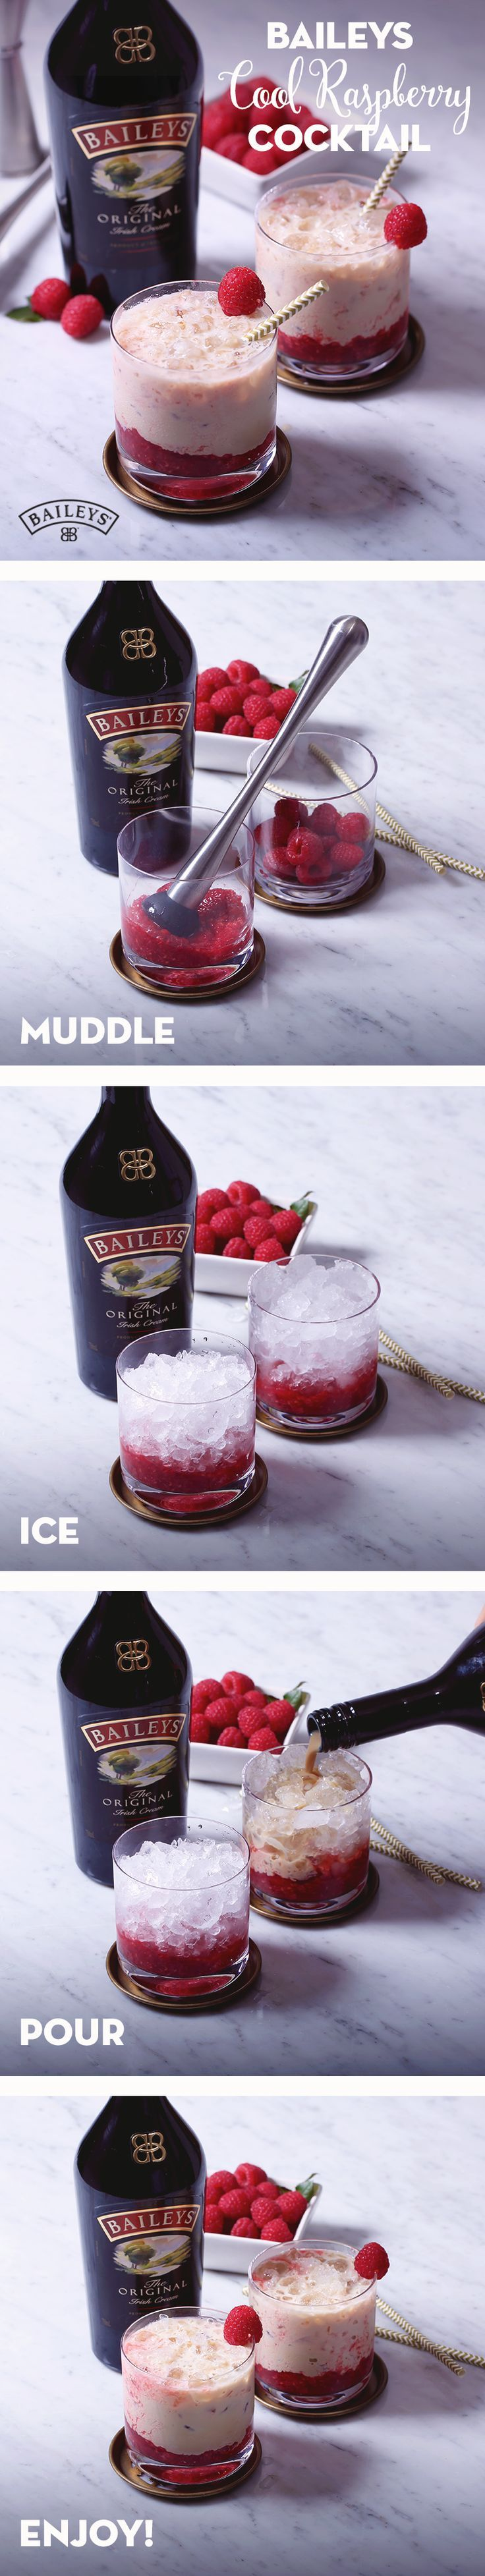 Three-day weekend coming up? Sweeten up your day off with this simple and easy Cool Raspberry cocktail recipe. Made with crushed ice, raspberries and Baileys, it's the perfect cold, refreshing tasting summer drink for livening up the party. #planningyourday